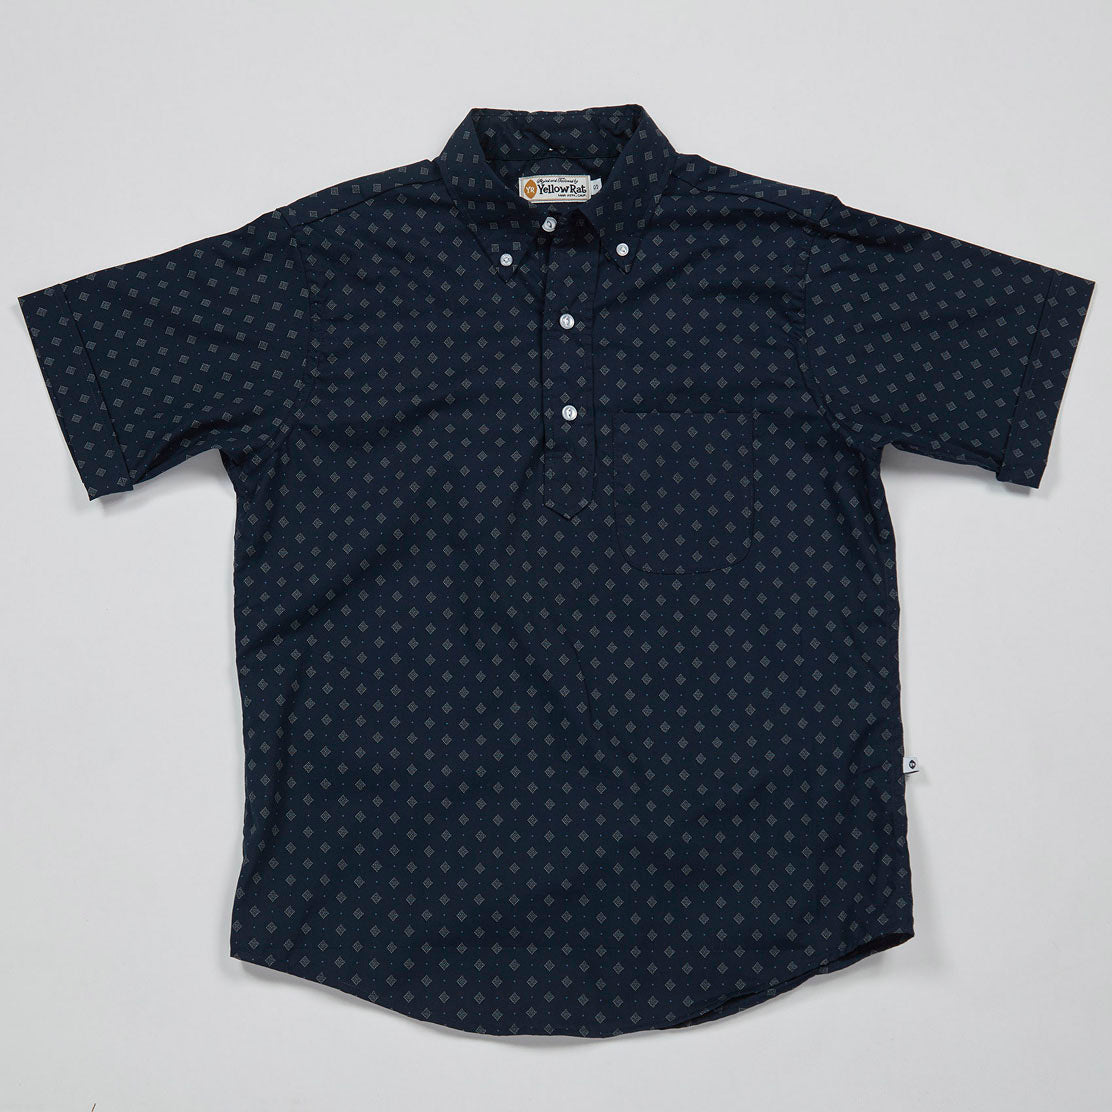 Pull Over Button-down Shirt I (Navy)